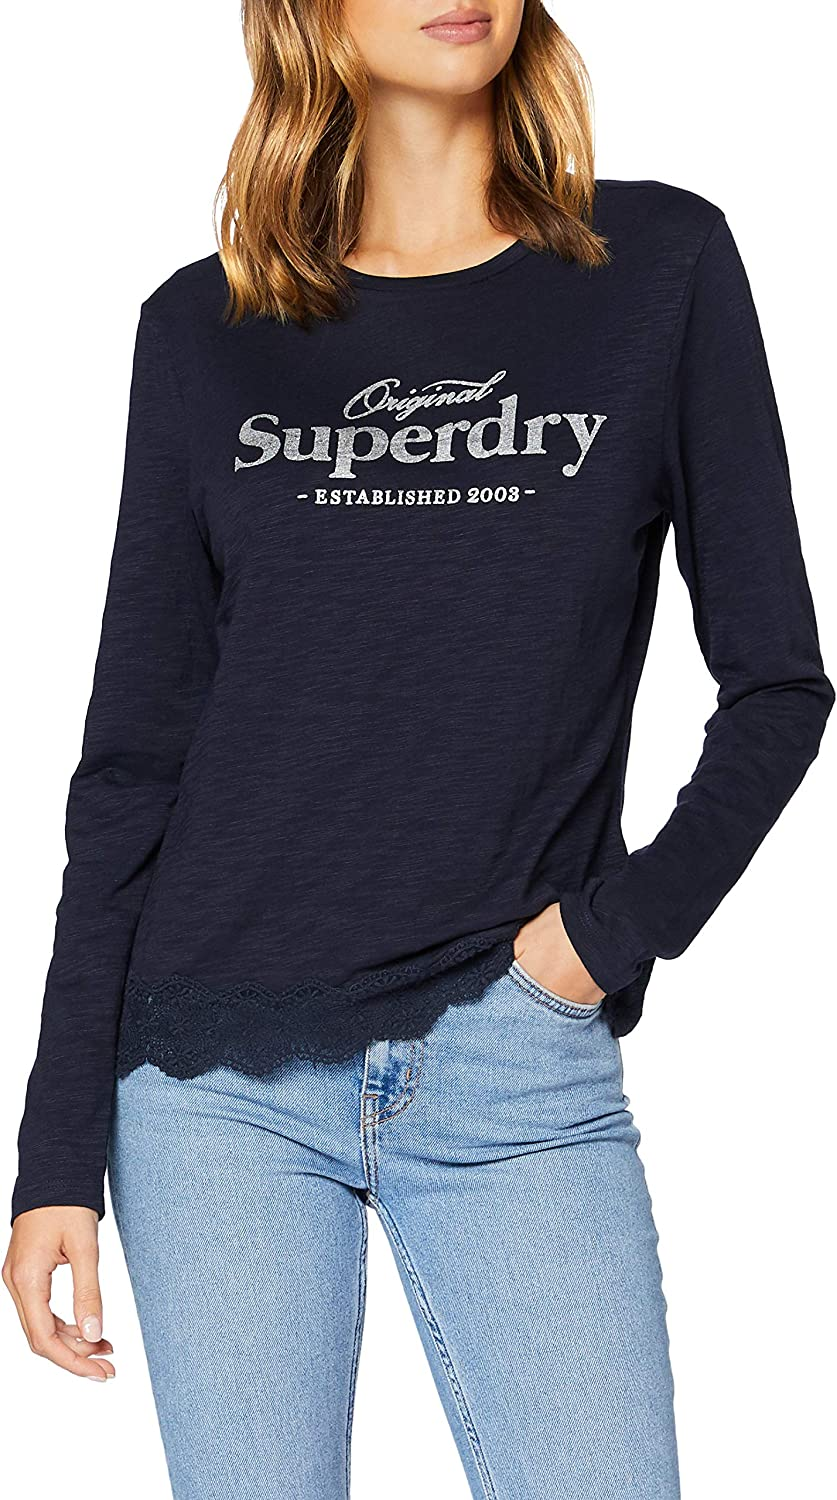 Superdry Graphic Lace Mix Top Sleeved Cheap super special price Long New sales